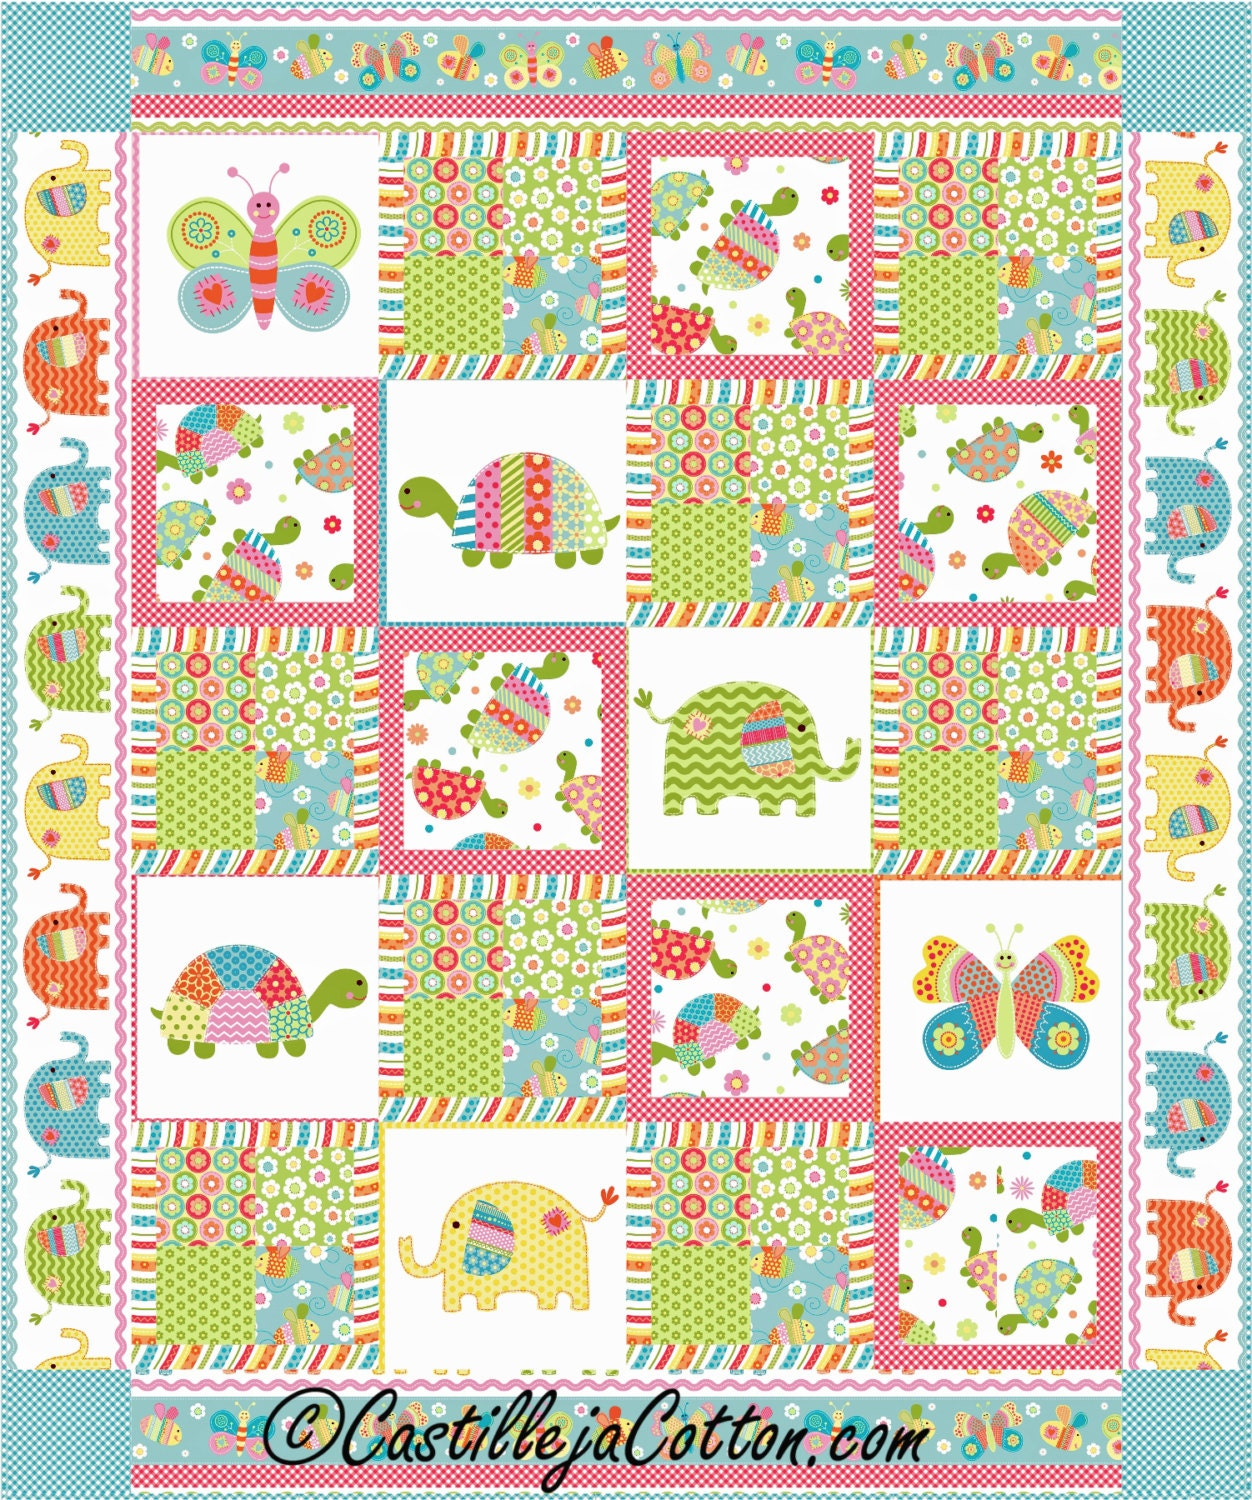 Bundle of love quilt epattern 4946 1 child 39 s quilt for Childrens fabric bundles